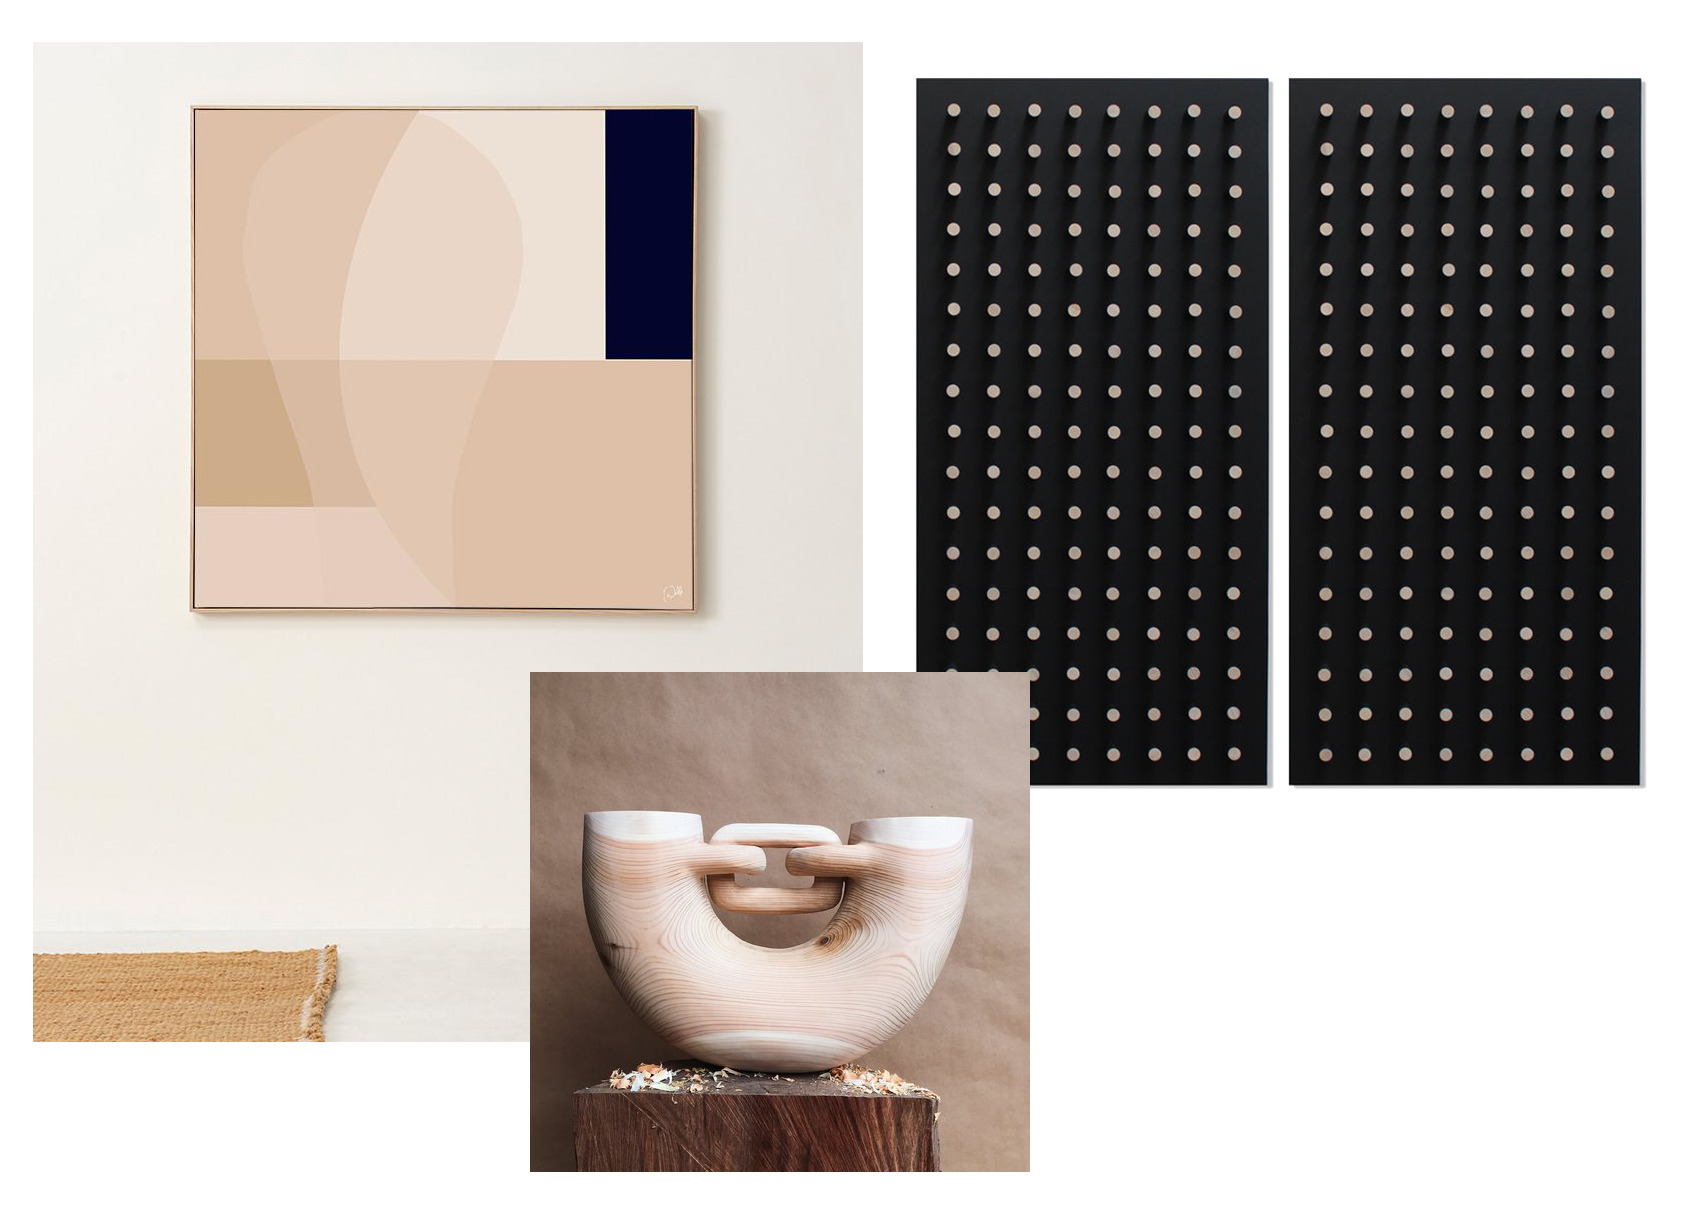 From Left to Right: Female 07 by Caroline Walls, Divide by Bradley Duncan, & Untiled Sculpture by Ariele Alasko.